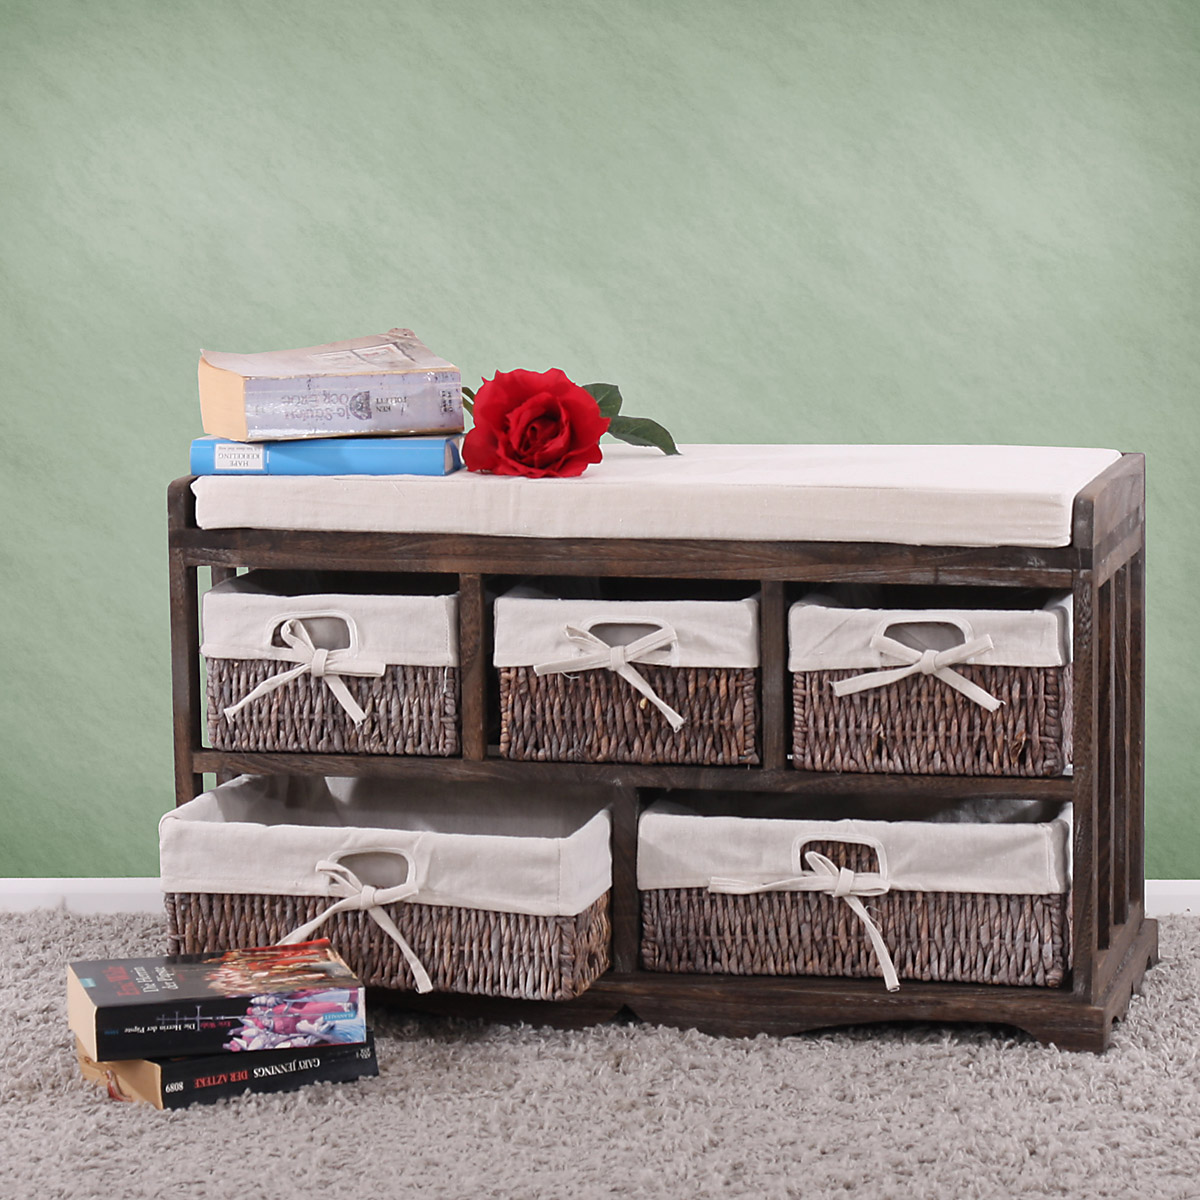 commode banc 5 paniers 77x36x45cm shabby vintage blanc gris ou marron ebay. Black Bedroom Furniture Sets. Home Design Ideas